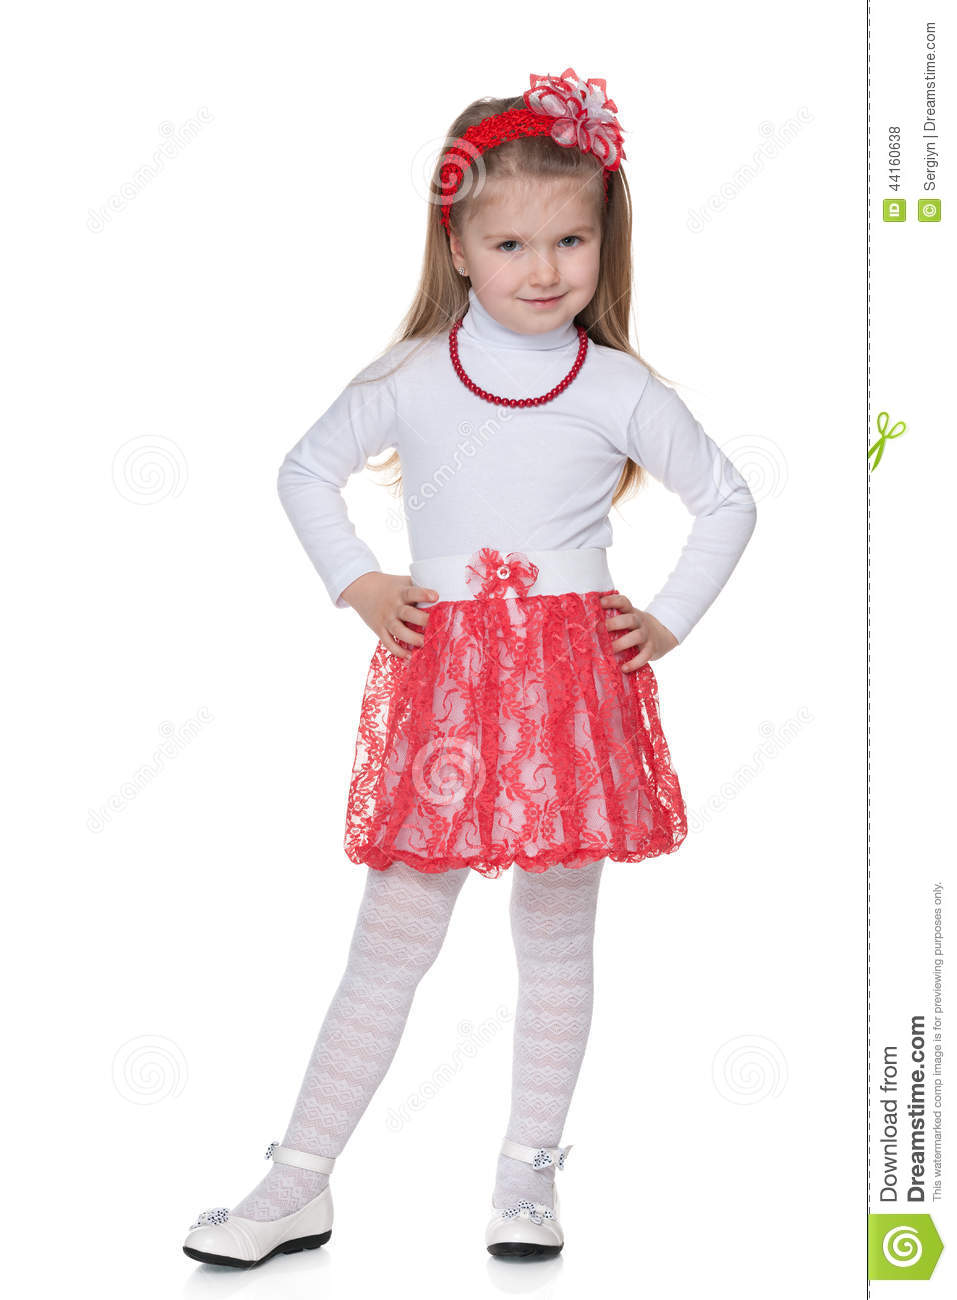 Girl in red skirt